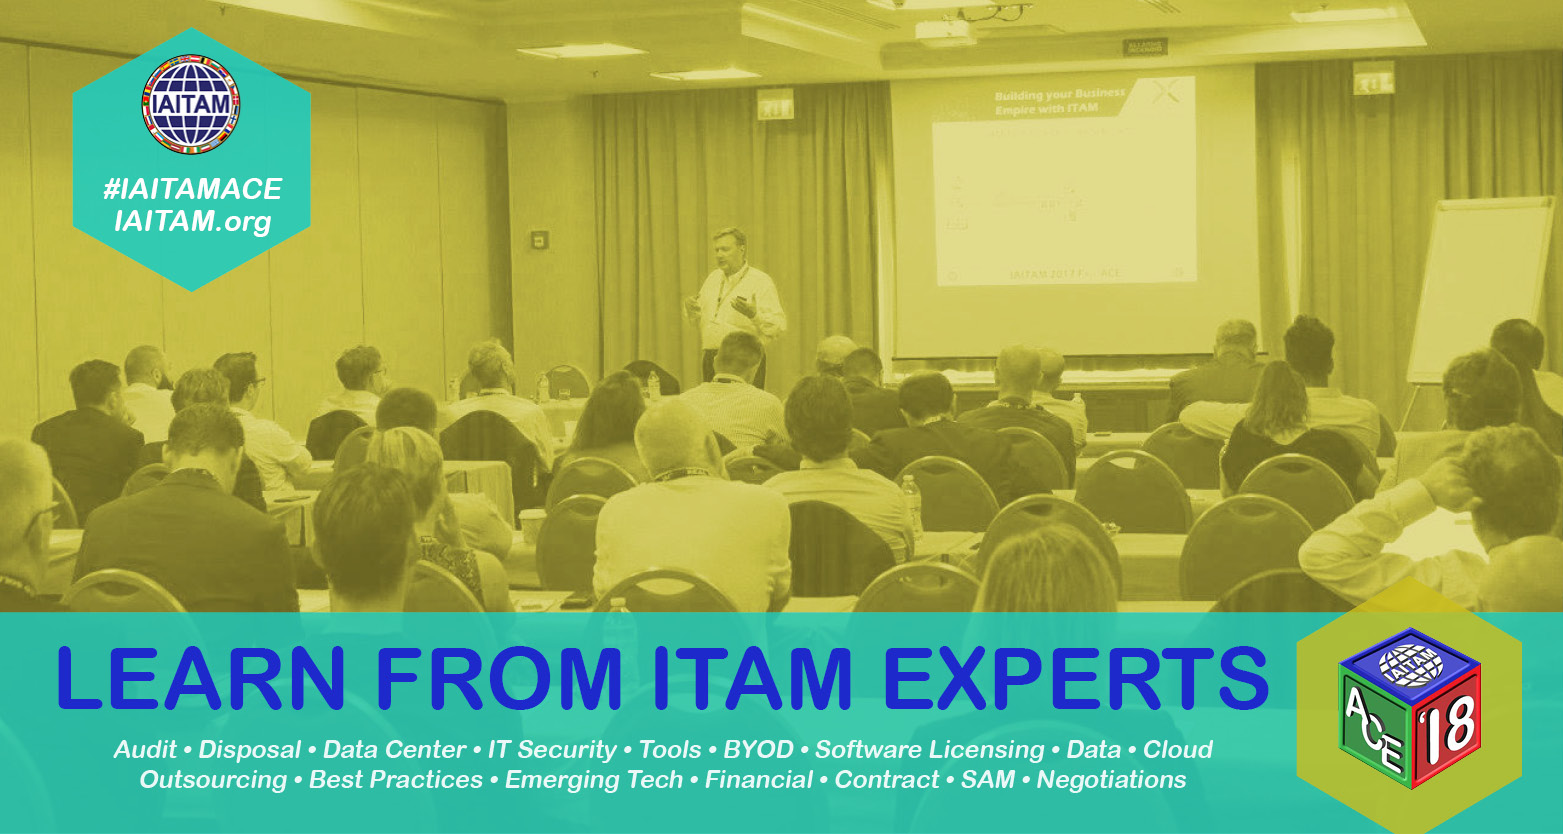 Learn from ITAM Experts at the European IAITAM ACE 2018